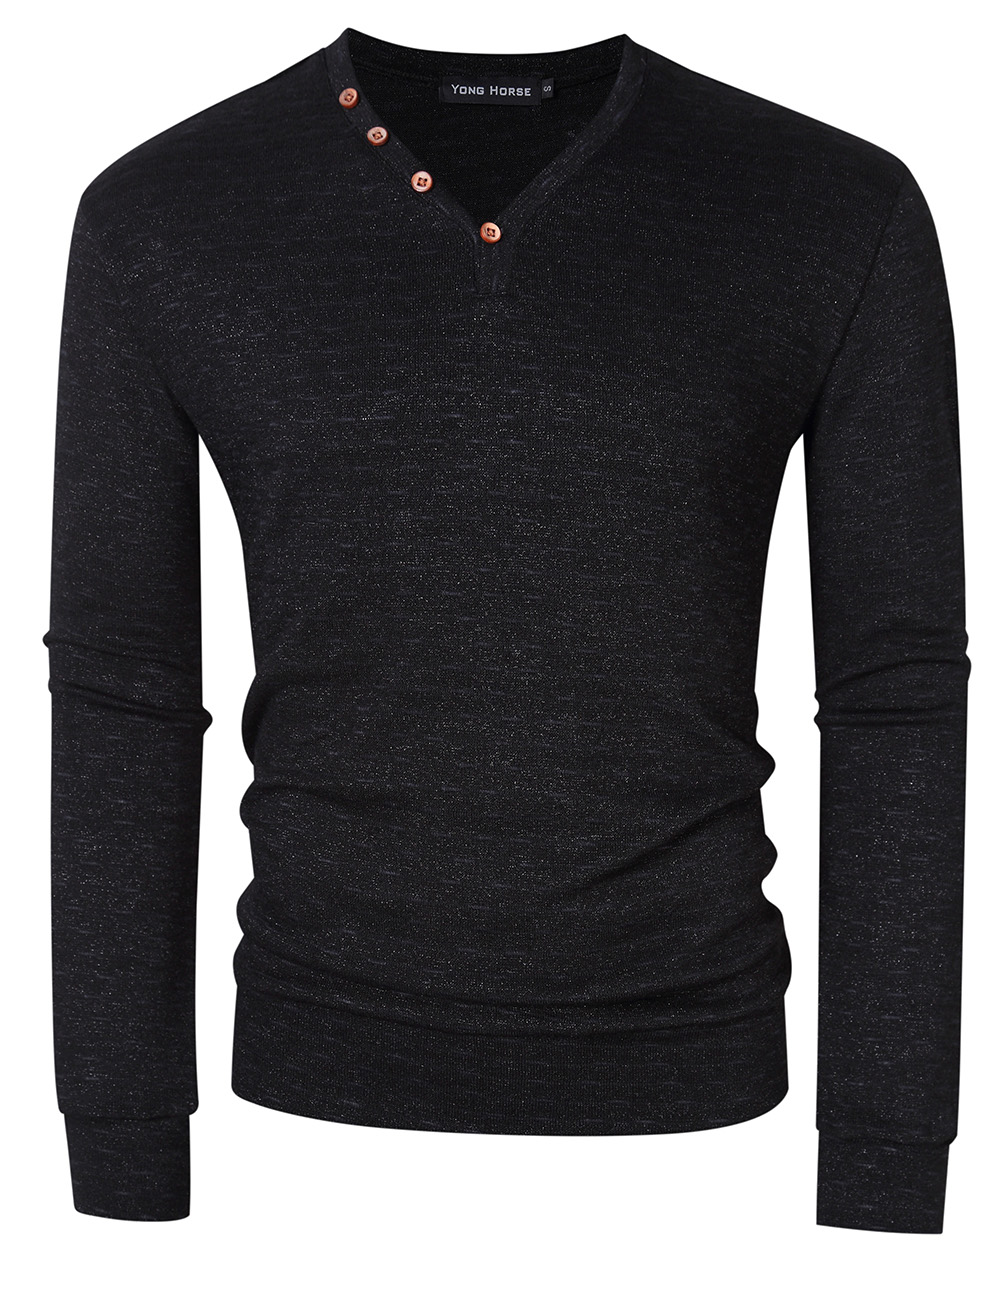 [US Direct] Yong Horse Men's Textured Slim Fit Long Sleeve V Neck Casual Henley Shirt with 4-Button Decor Black_S